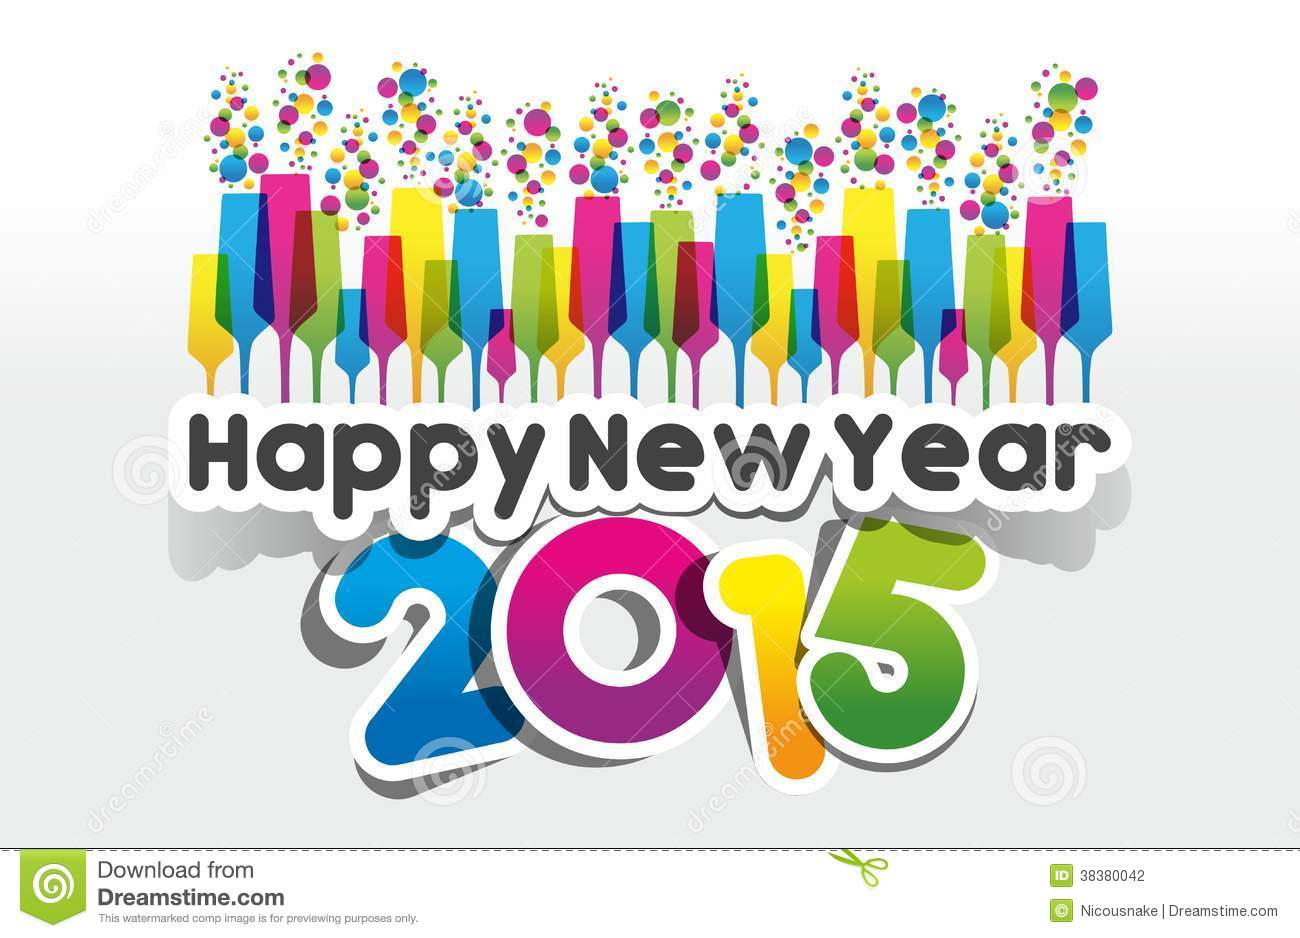 Printable New Year Card Designs For 2015 Page 5